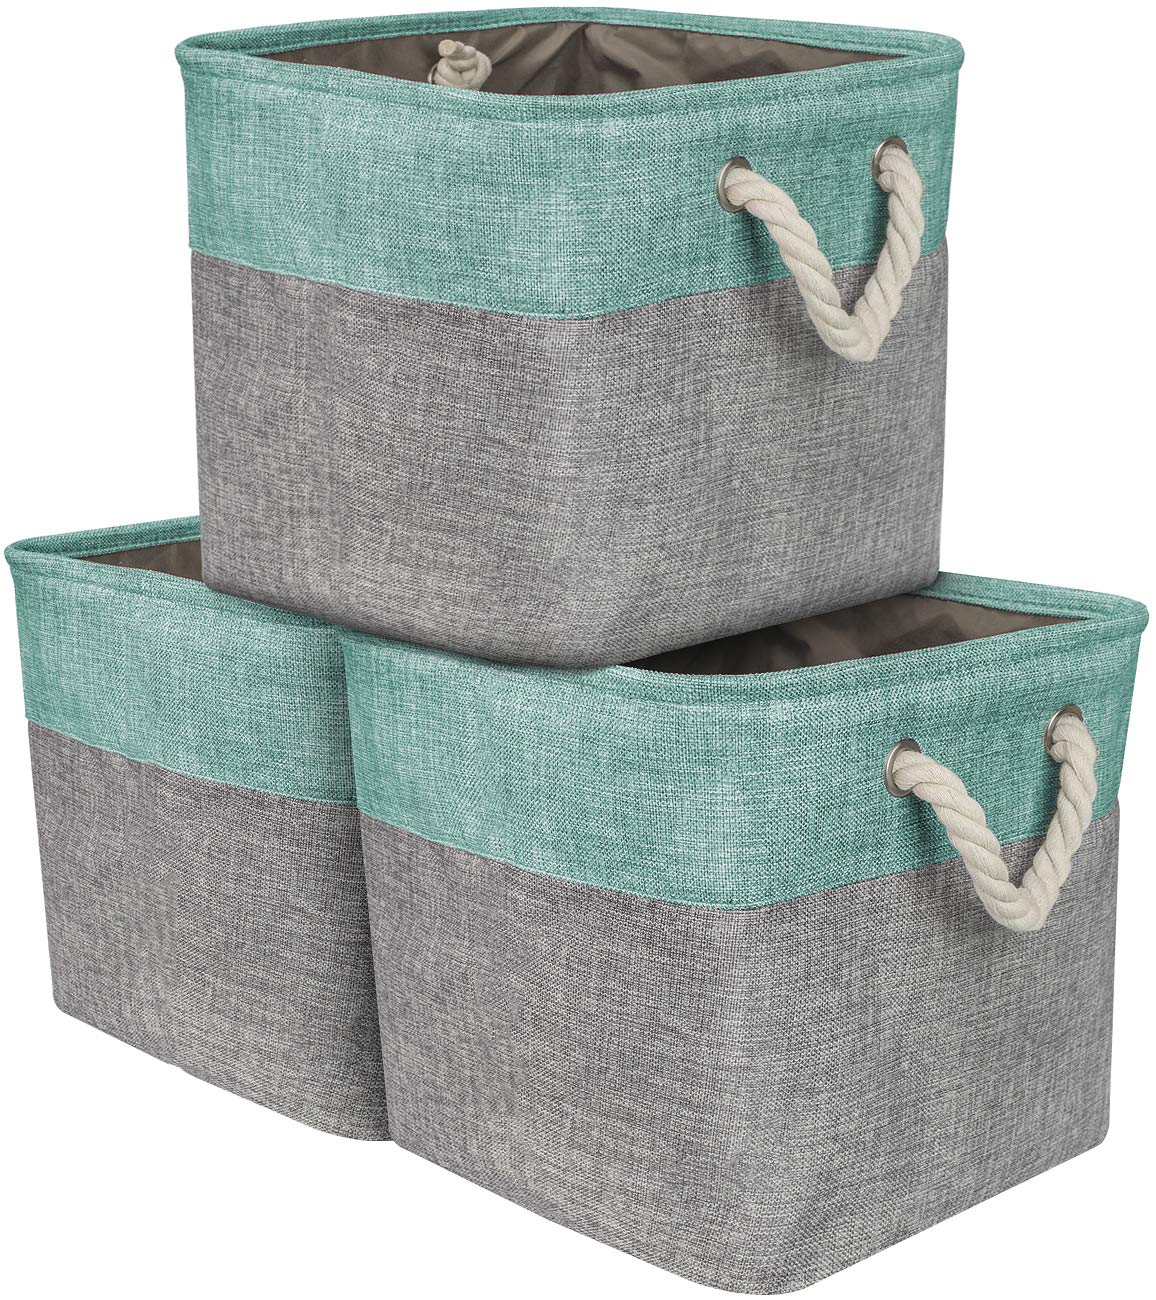 Sorbus Storage Large Basket Set [3-Pack] Big Rectangular Fabric Collapsible Organizer Bin Cotton Rope Carry Handles Linens, Towels, Toys, Clothes, Kids Room, Nursery (Rope Basket - Teal)